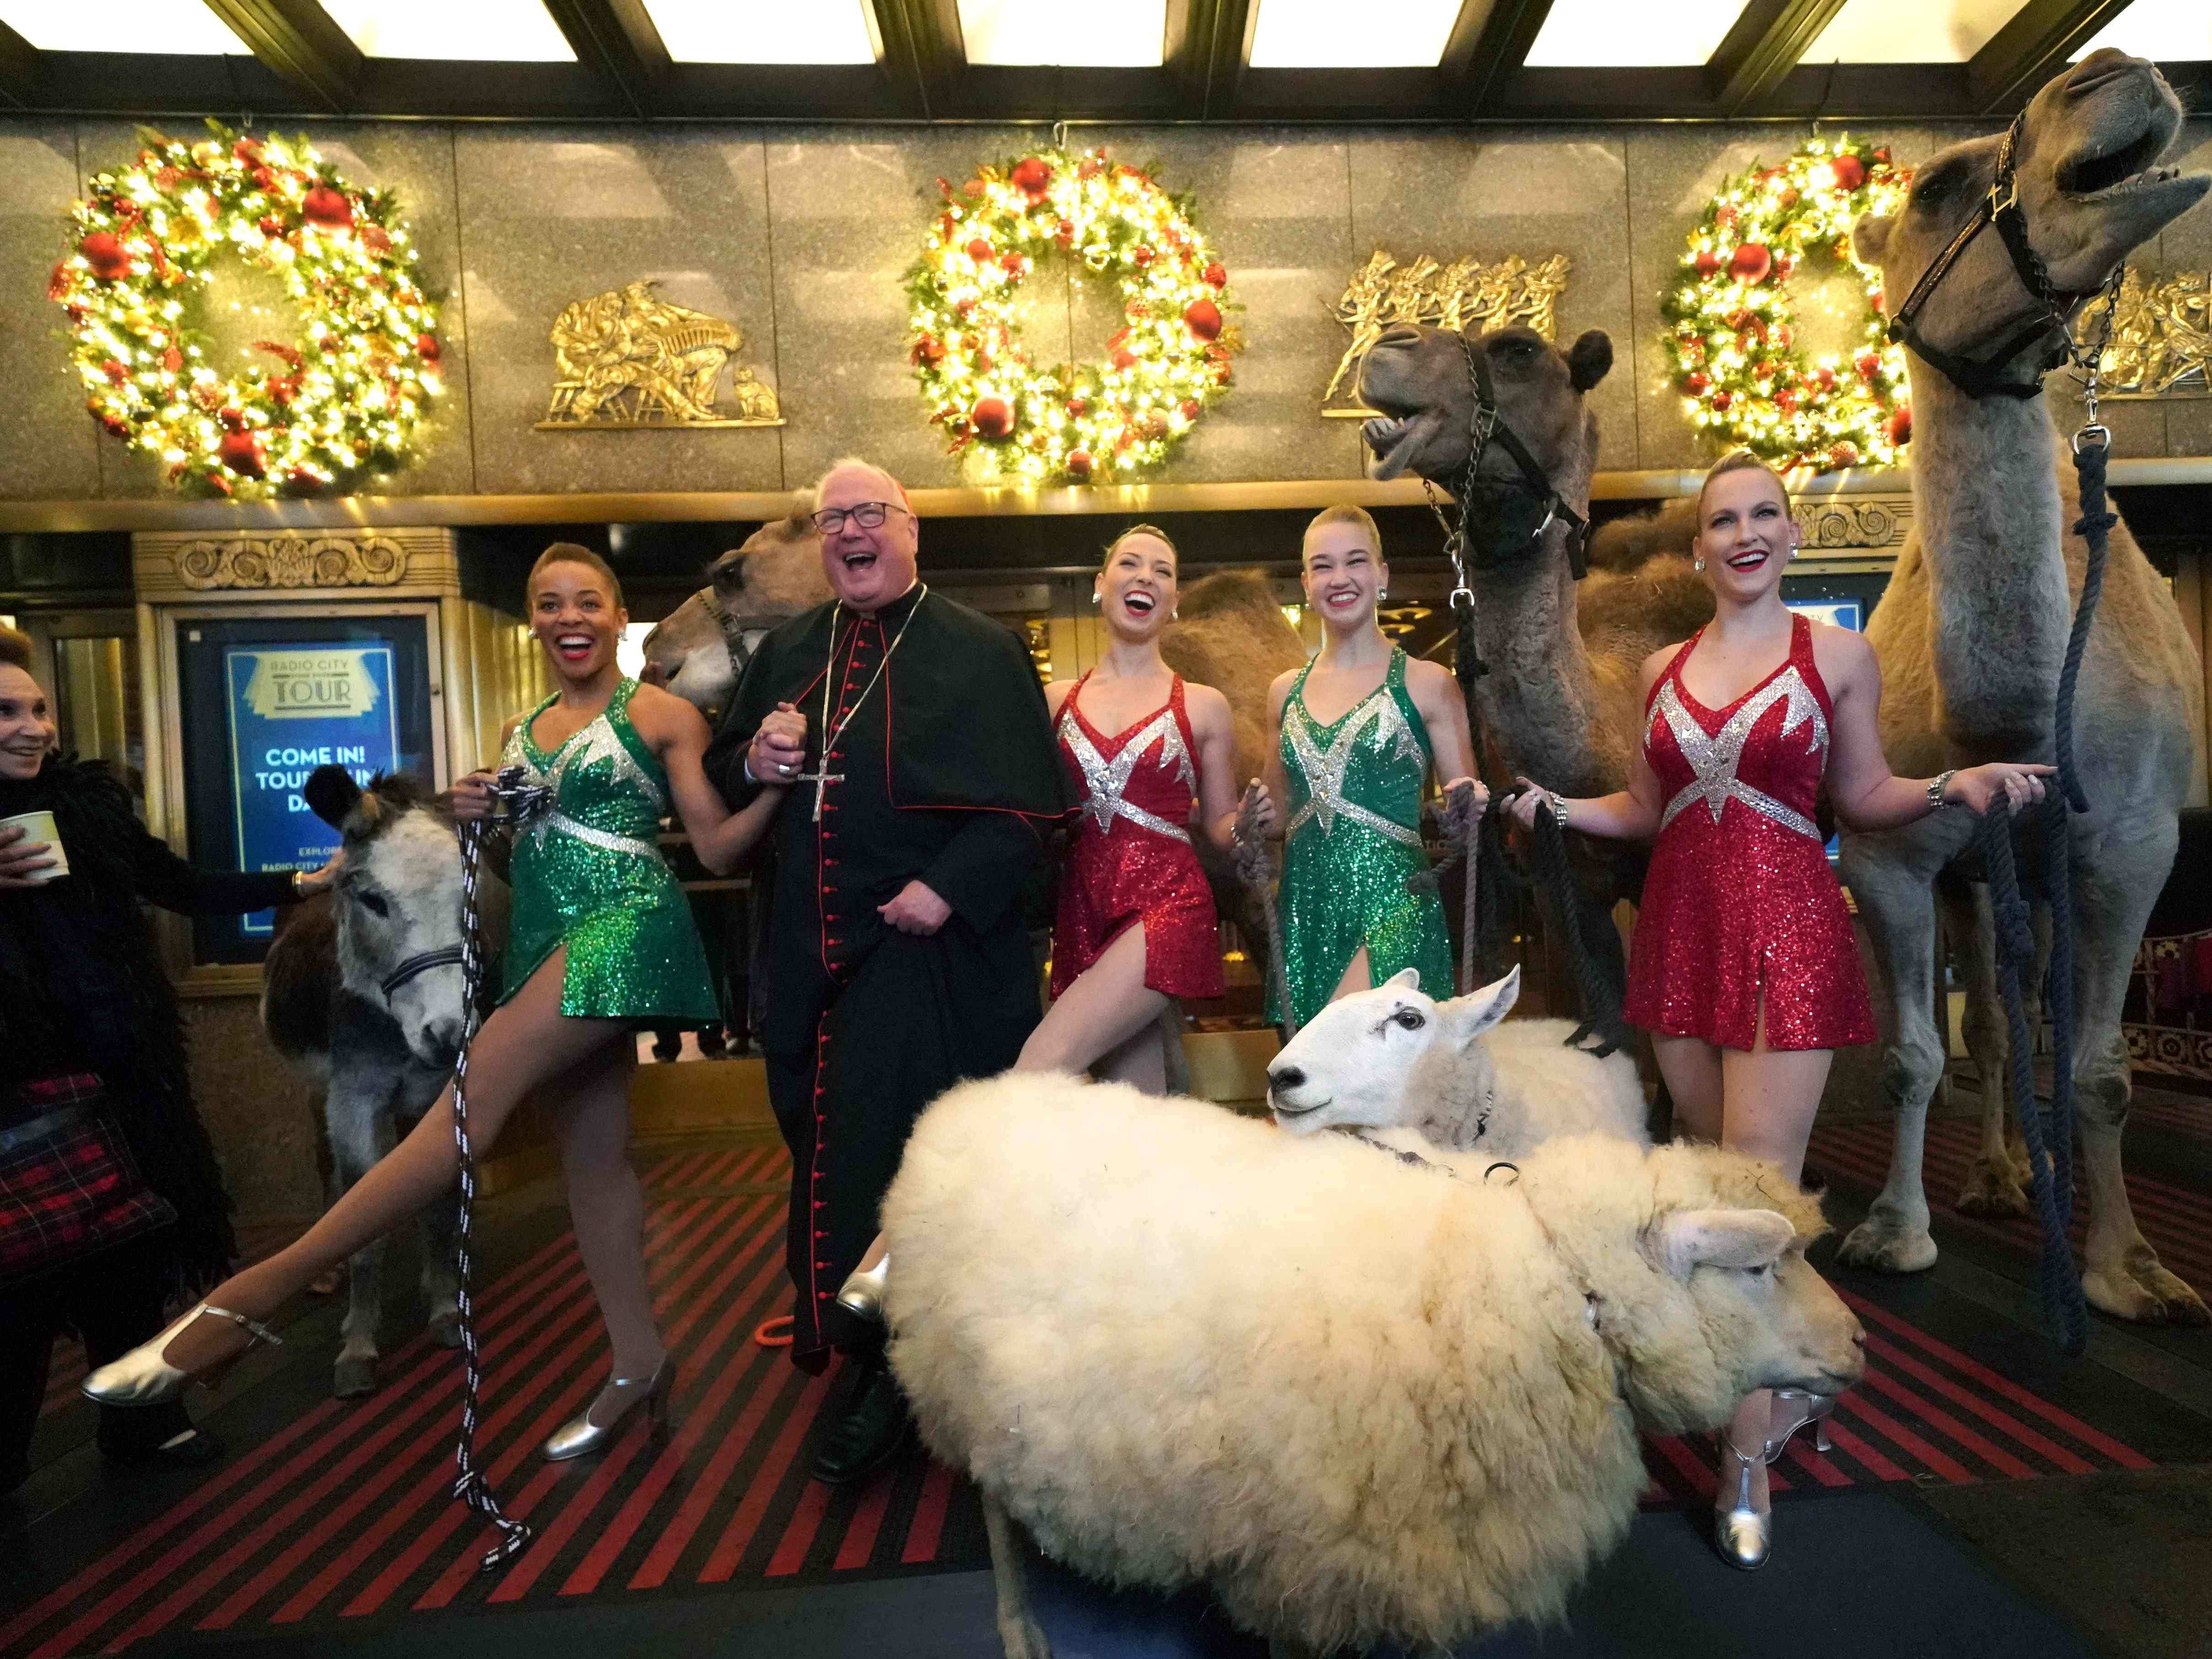 Radio City Rockette's Samantha Berger, Lauren Gibbs, Kathleen Laituri and Samantha Harvey along with Eminence Timothy Cardinal Dolan welcome camels, sheep and donkey back to Radio City Music Hall November 5, 2018 in New York for their starring role in the Living Nativity scene of the 2018 production of the Christmas Spectacular. - The Christmas Spectacular starring the Radio City Rockettes, presented by Chase, will run from November 9  January 1, 2019. (Photo by TIMOTHY A. CLARY / AFP)TIMOTHY A. CLARY/AFP/Getty Images